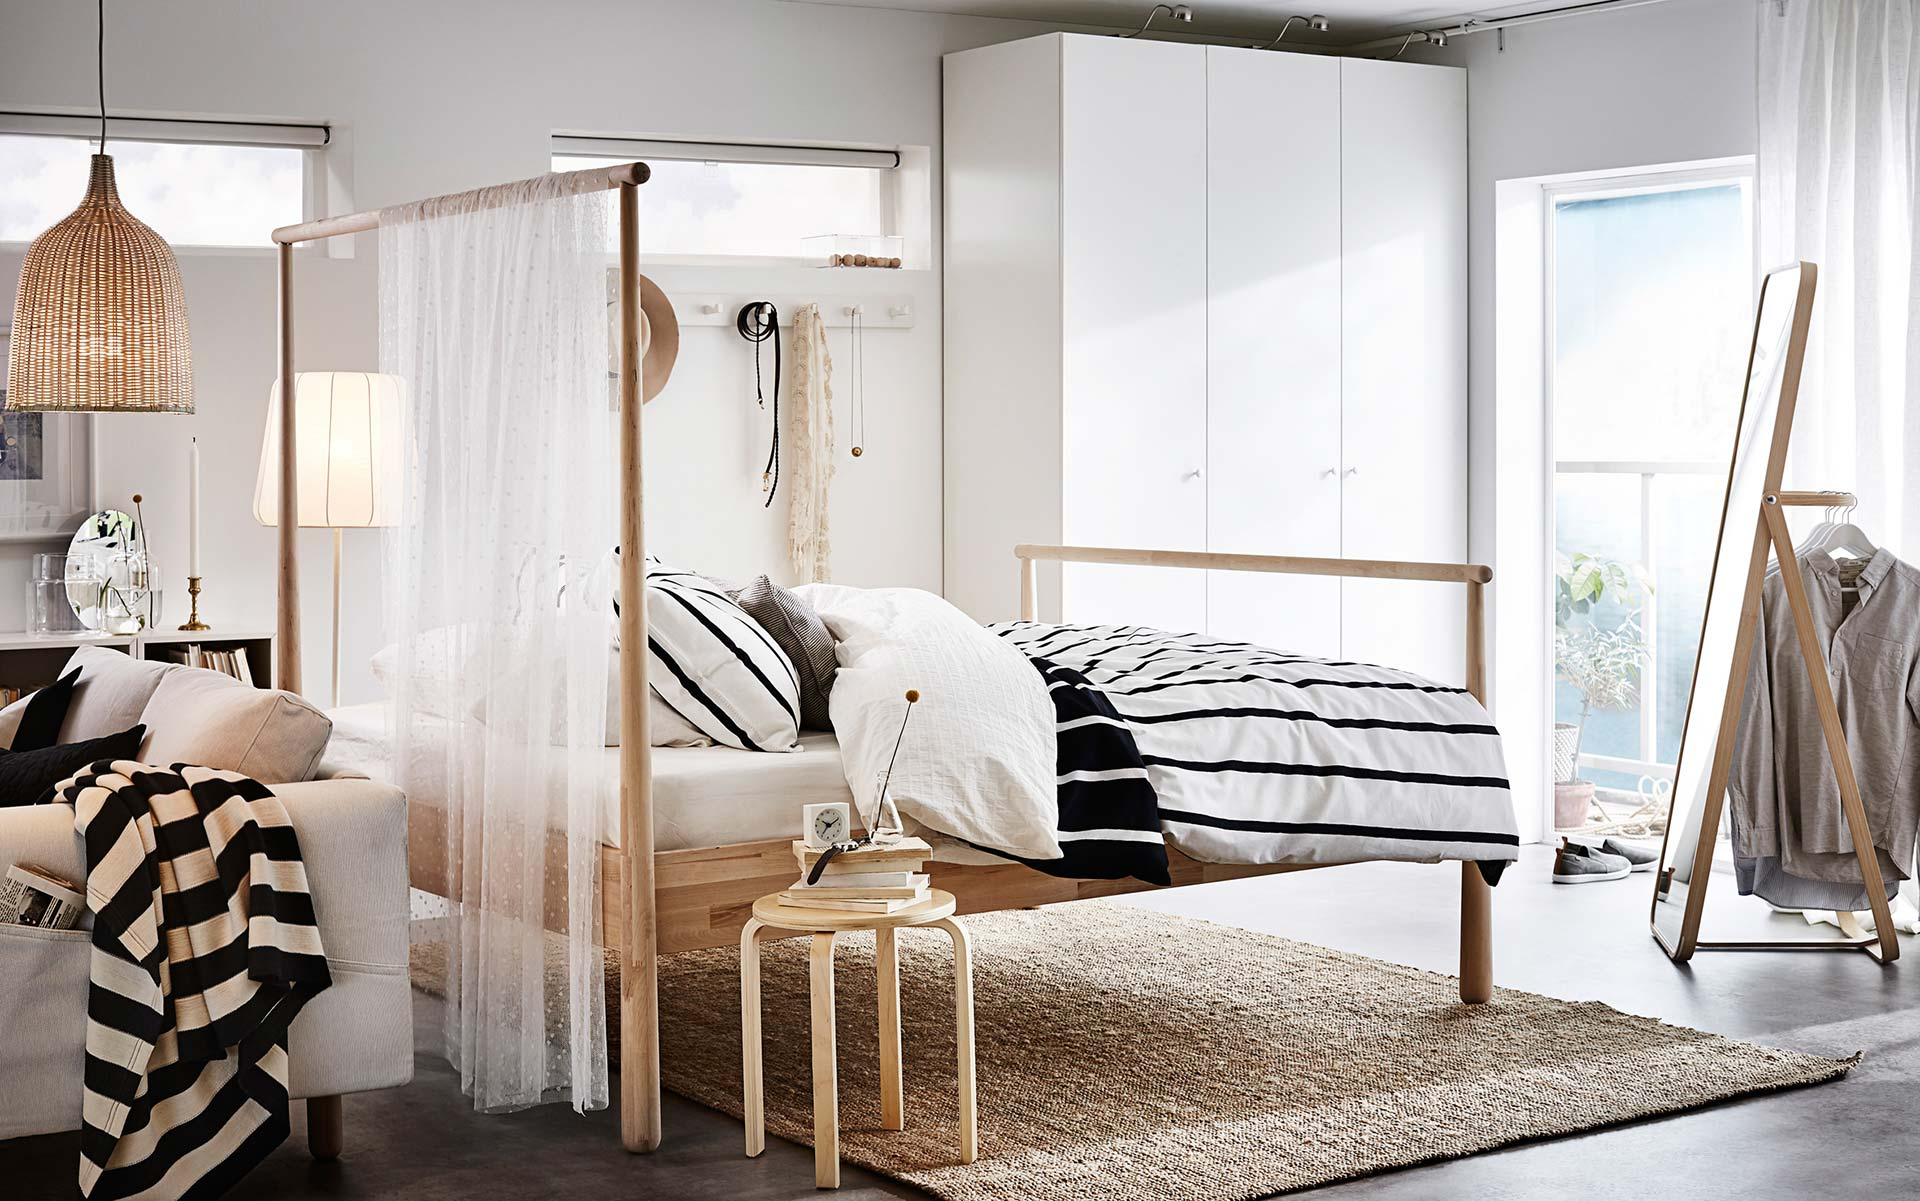 das sind die top 10 interior trends f r 2018 who is mocca. Black Bedroom Furniture Sets. Home Design Ideas